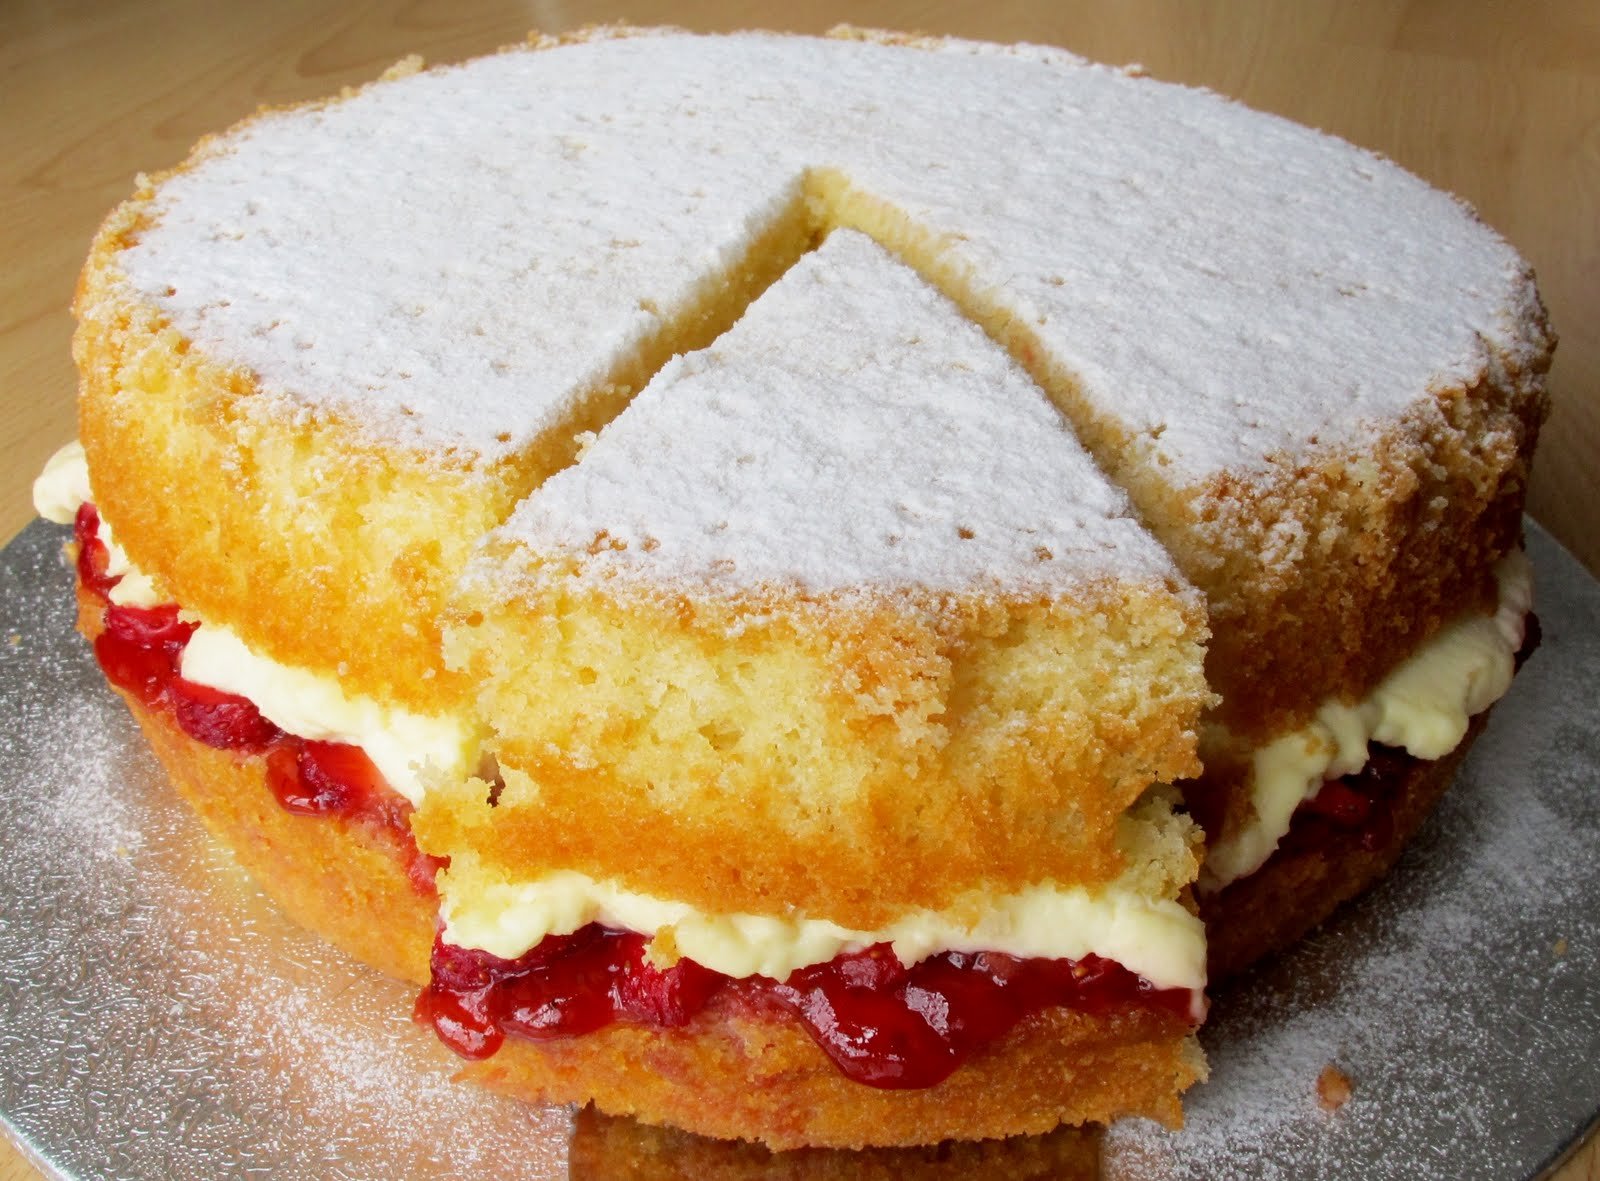 Sam Tan's Kitchen: Victoria Sponge with Fresh Strawberries